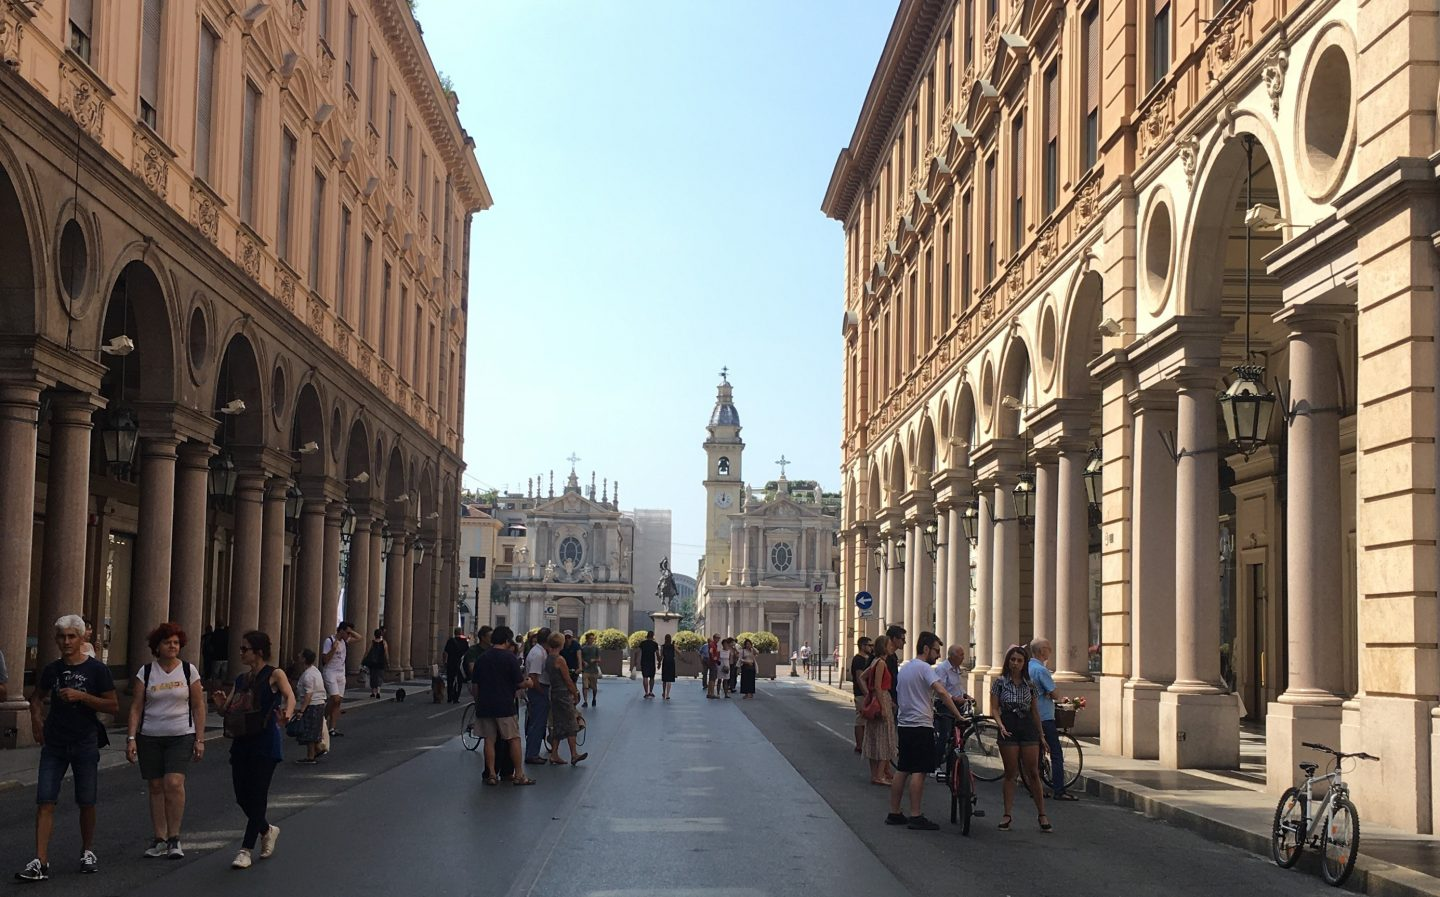 Pedestrianised street in family friendly Turin Italy